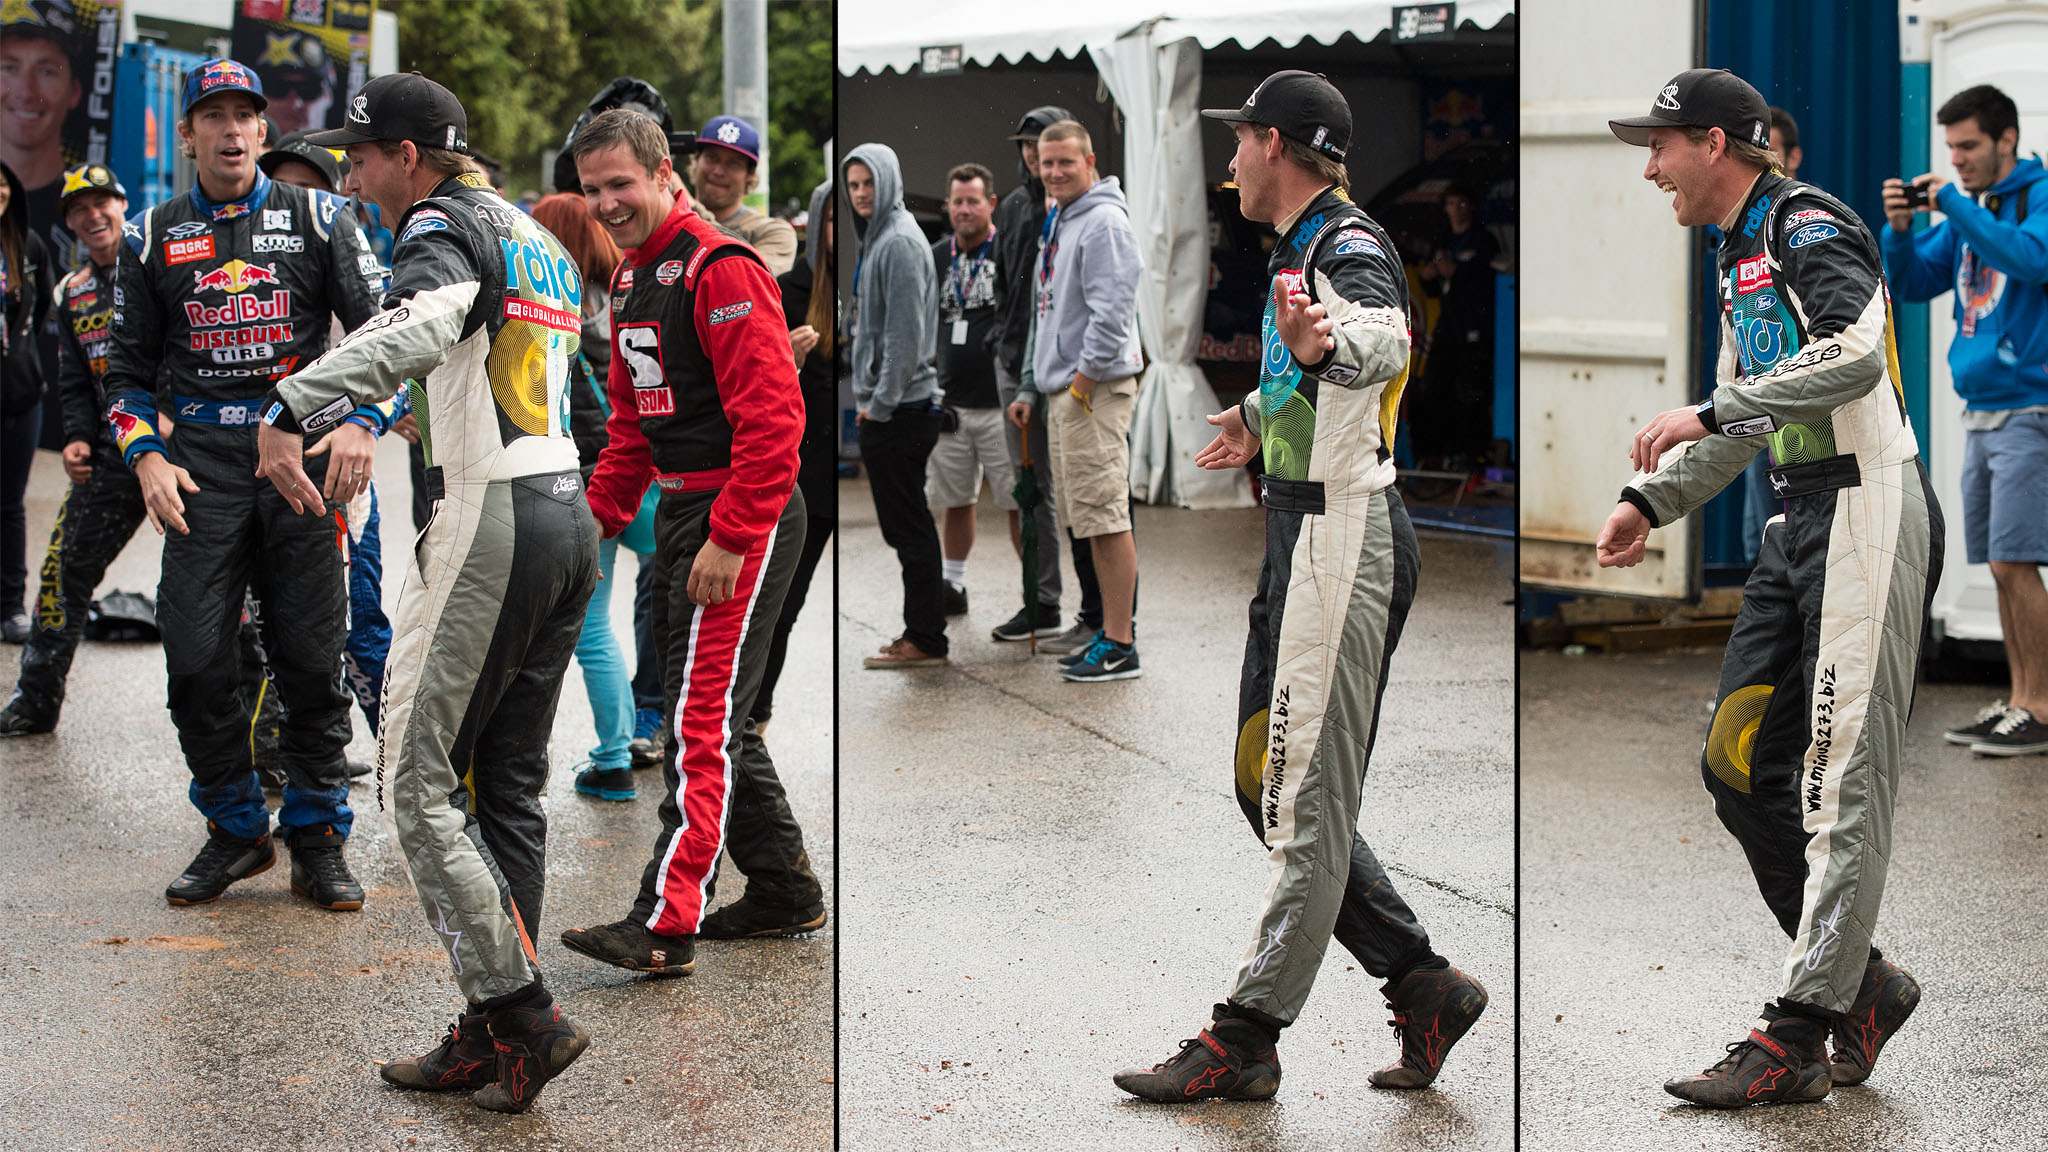 With hours of rain delays on the RallyCross course, drivers had to come up with ways to amuse themselves while waiting for the official call. Scott Speed continued his rock, paper, scissors losing streak against Travis Pastrana and had to moonwalk across the Rally paddock because of it.